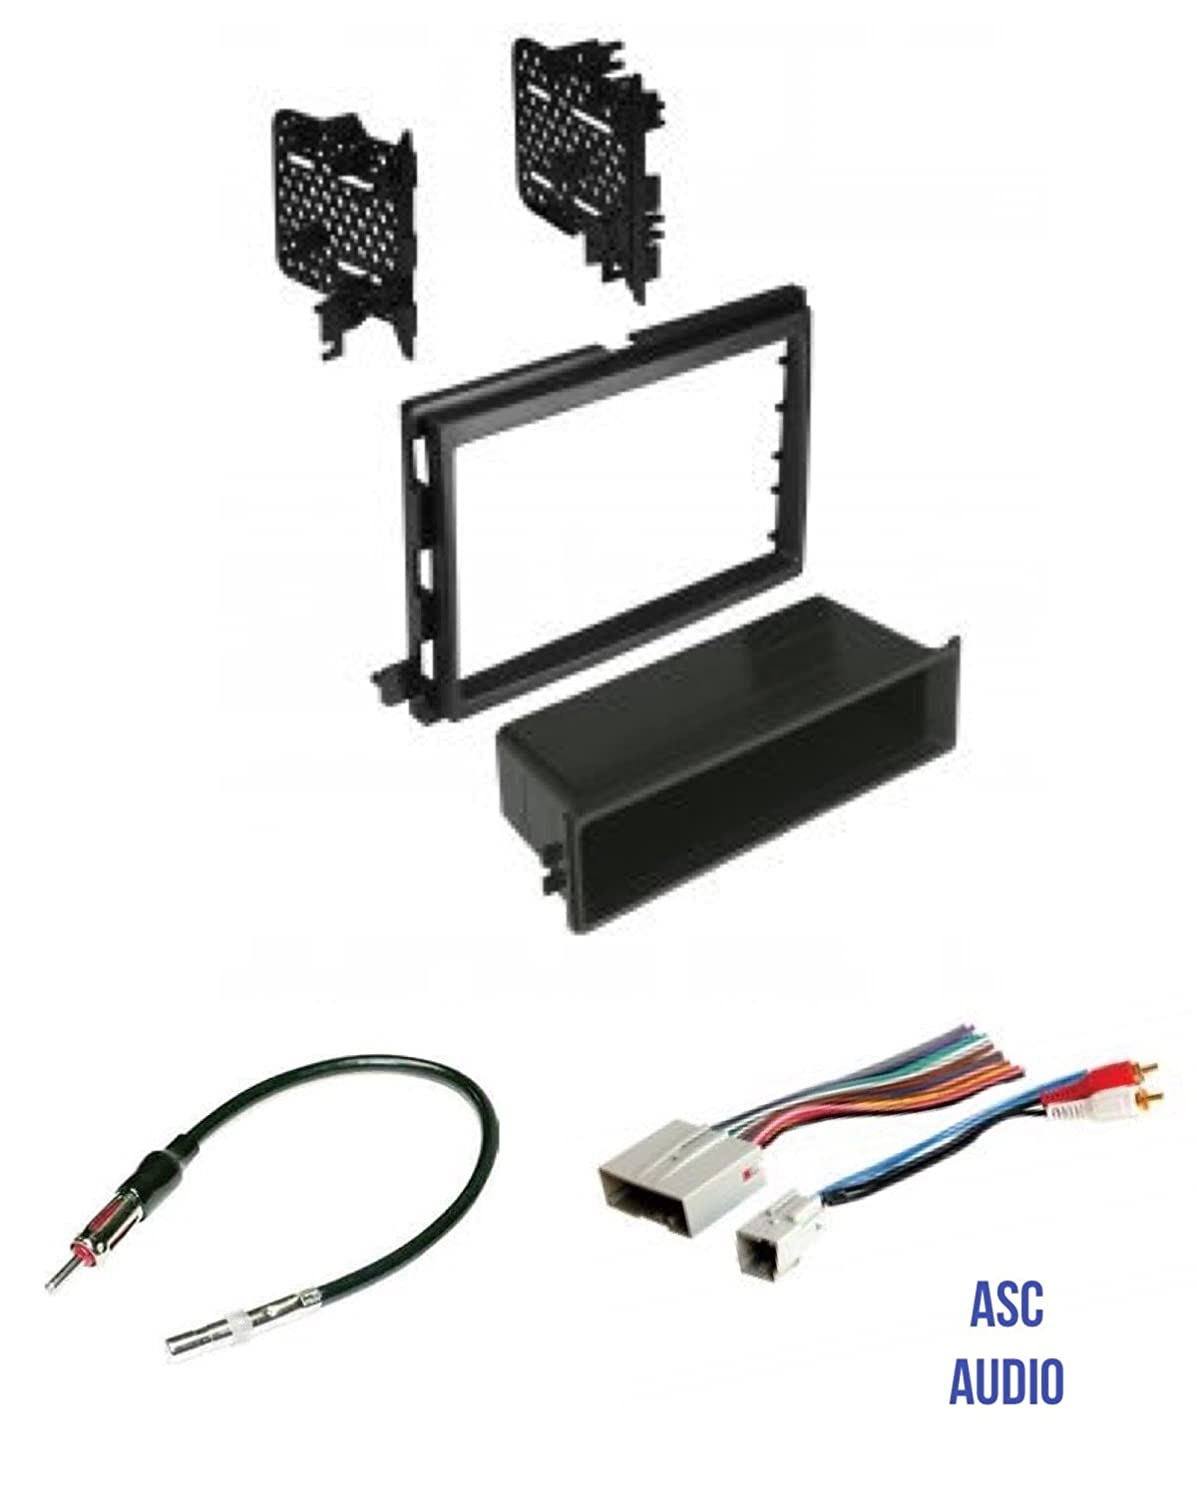 Asc Audio Car Stereo Radio Install Dash Kit Wire 2008 Ford Focus Wiring Harness Adapter And Antenna To An Aftermarket For Some Lincoln Mercury